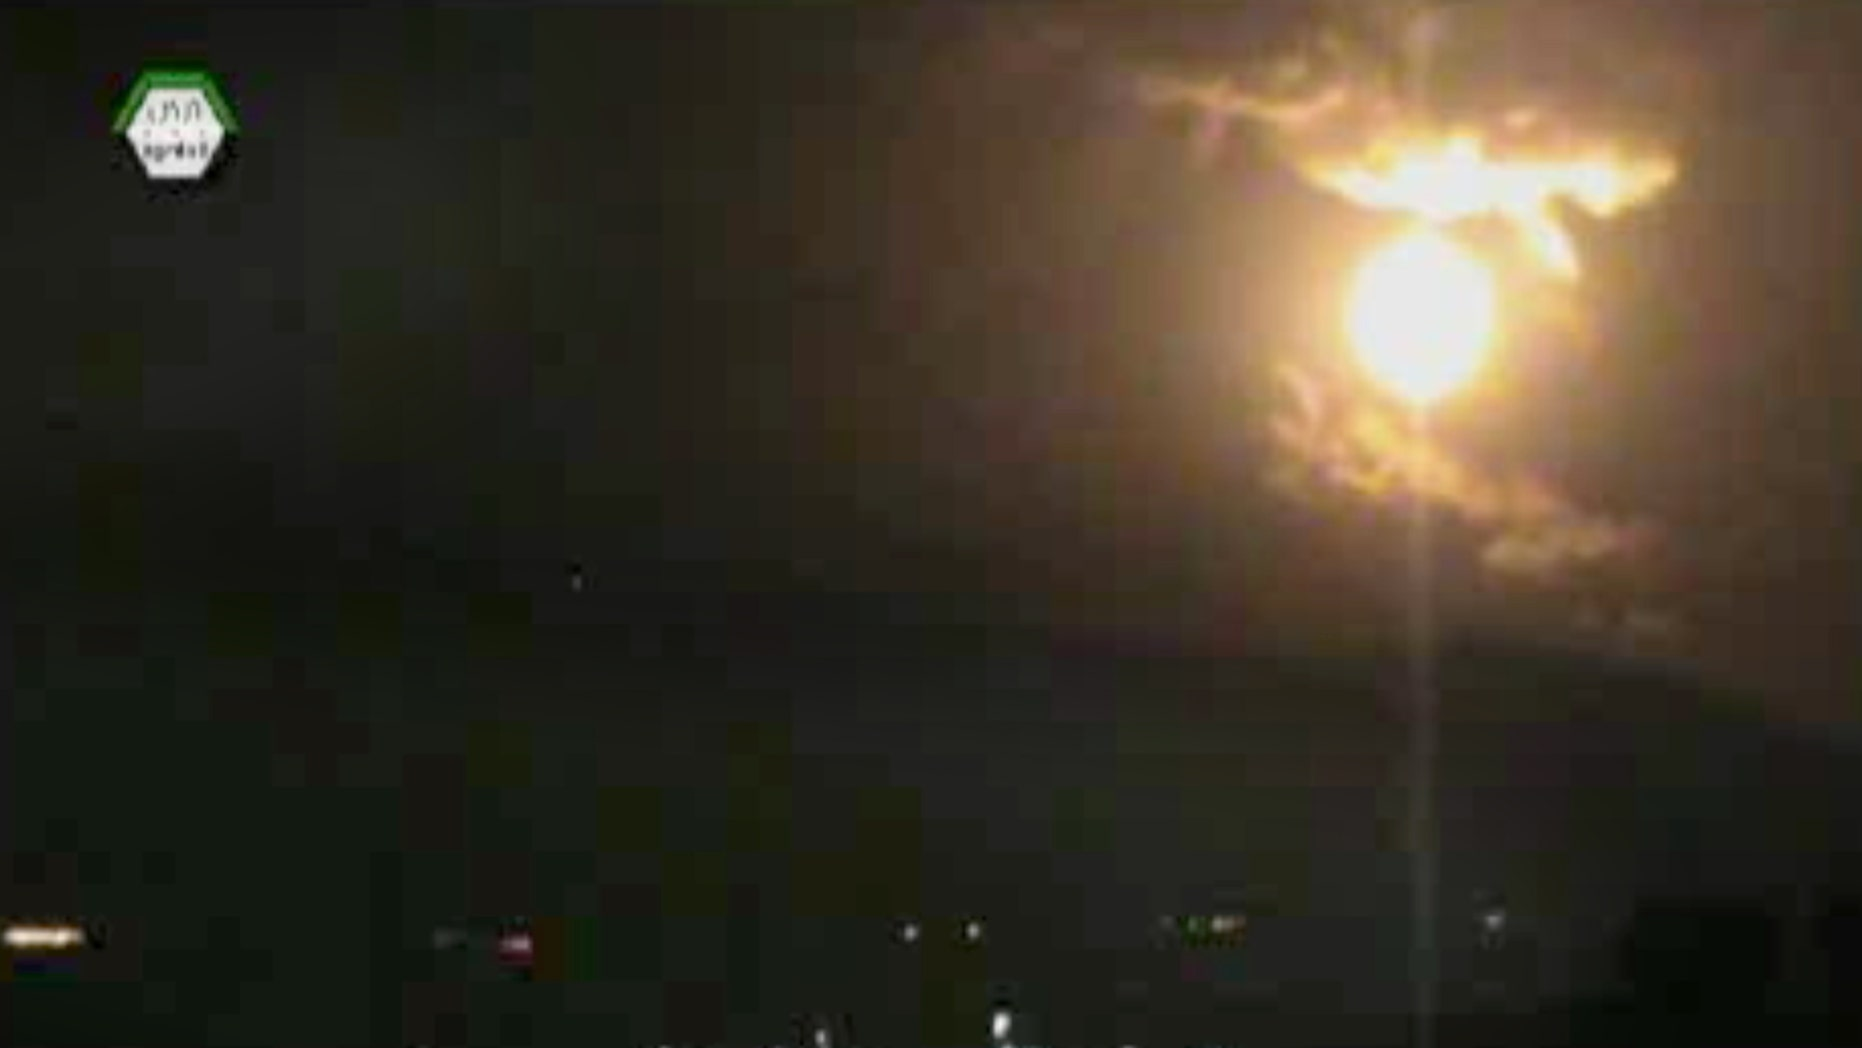 In this image taken from video obtained from the Ugarit News, which has been authenticated based on its contents and other AP reporting, a Israeli airstrikes hit Damascus, Syria, early Sunday, May 5, 2013. Israeli warplanes struck areas in and around the Syrian capital Sunday, setting off a series of explosions as they targeted a shipment of highly accurate, Iranian-made guided missiles believed to be on their way to Lebanon's Hezbollah militant group, officials and activists said. The attack, the second in three days, signaled a sharp escalation of Israel's involvement in Syria's bloody civil war. Syria's state media reported that Israeli missiles struck a military and scientific research center near the Syrian capital and caused casualties. (AP Photo/Ugarit News via AP video)